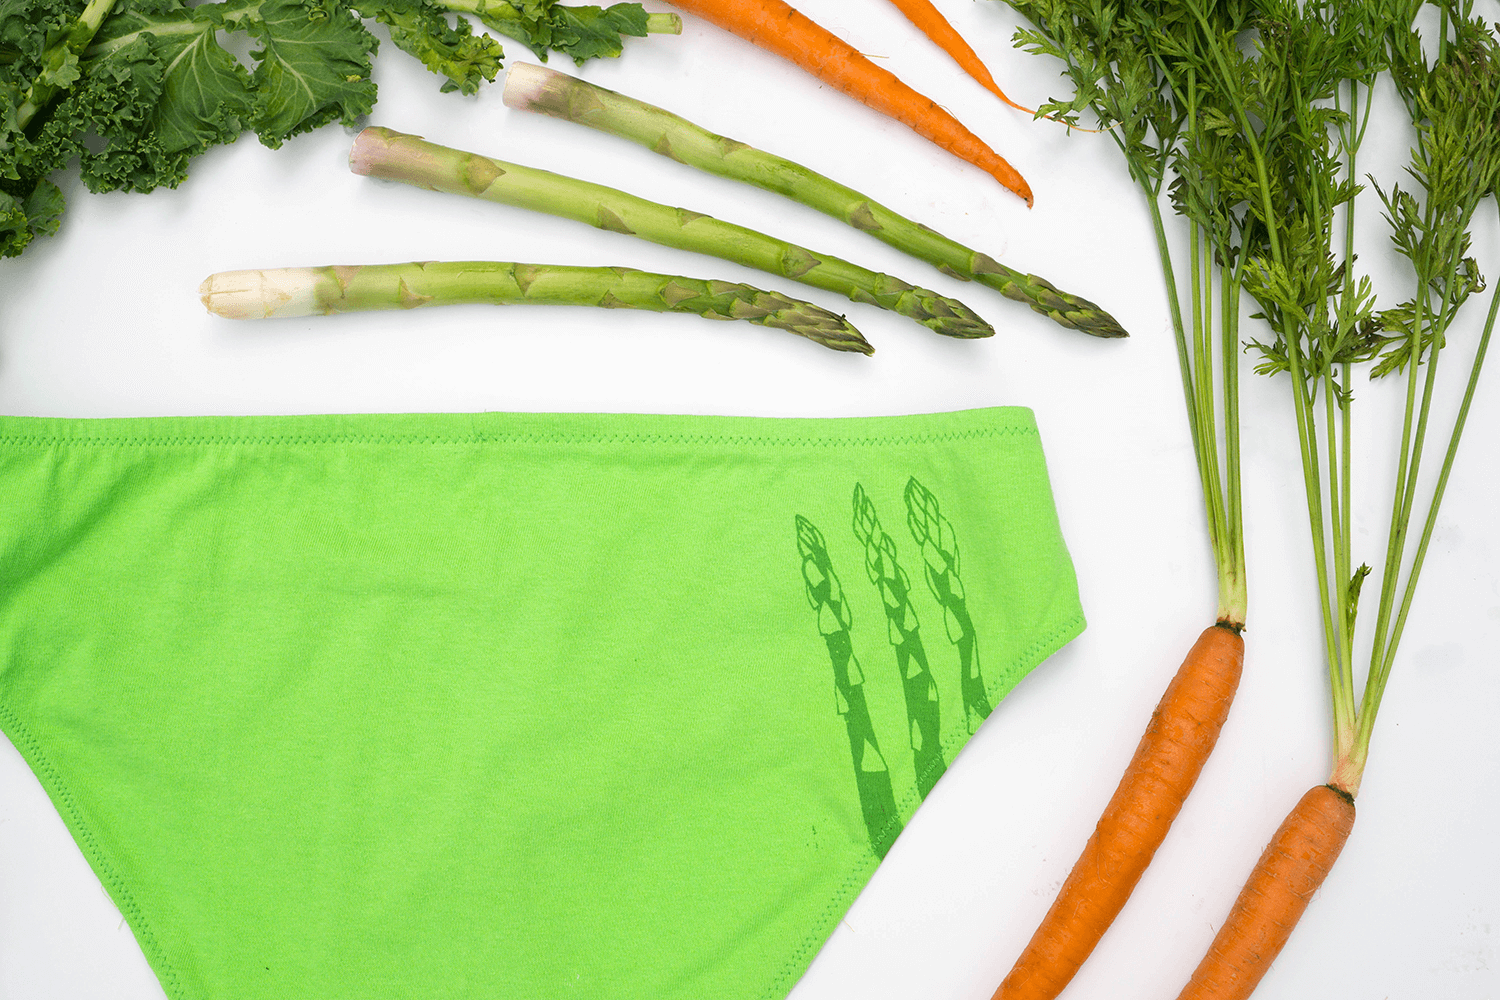 Amazing Asparagus Handmade Underwear by La Vie en Orange